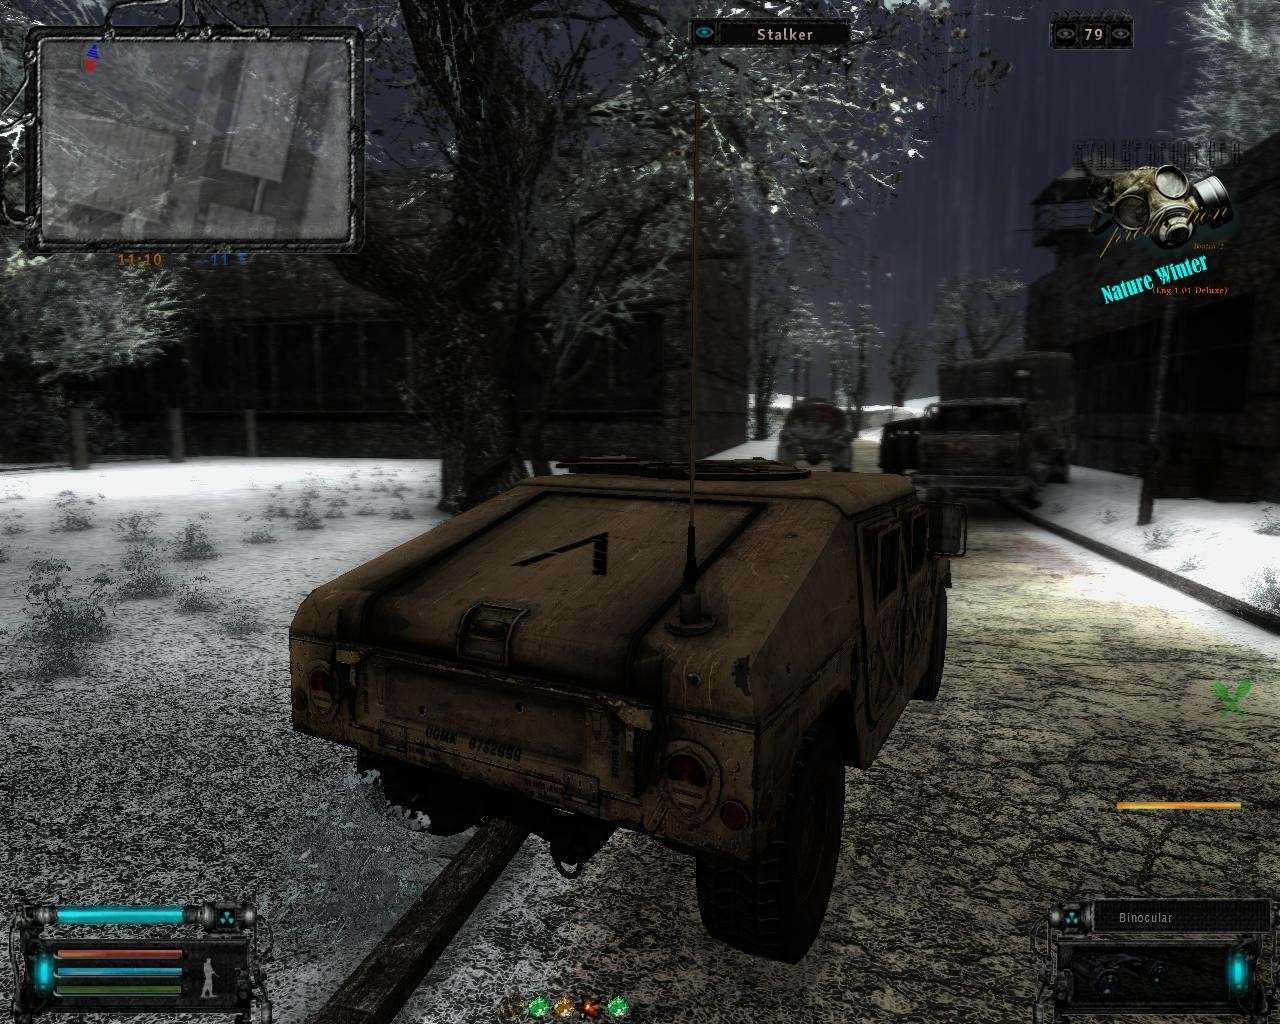 Nature Winter 2.3 Black Edition (eng 1.01 Deluxe) Images Gallery! Serie:1# Ss_bo107